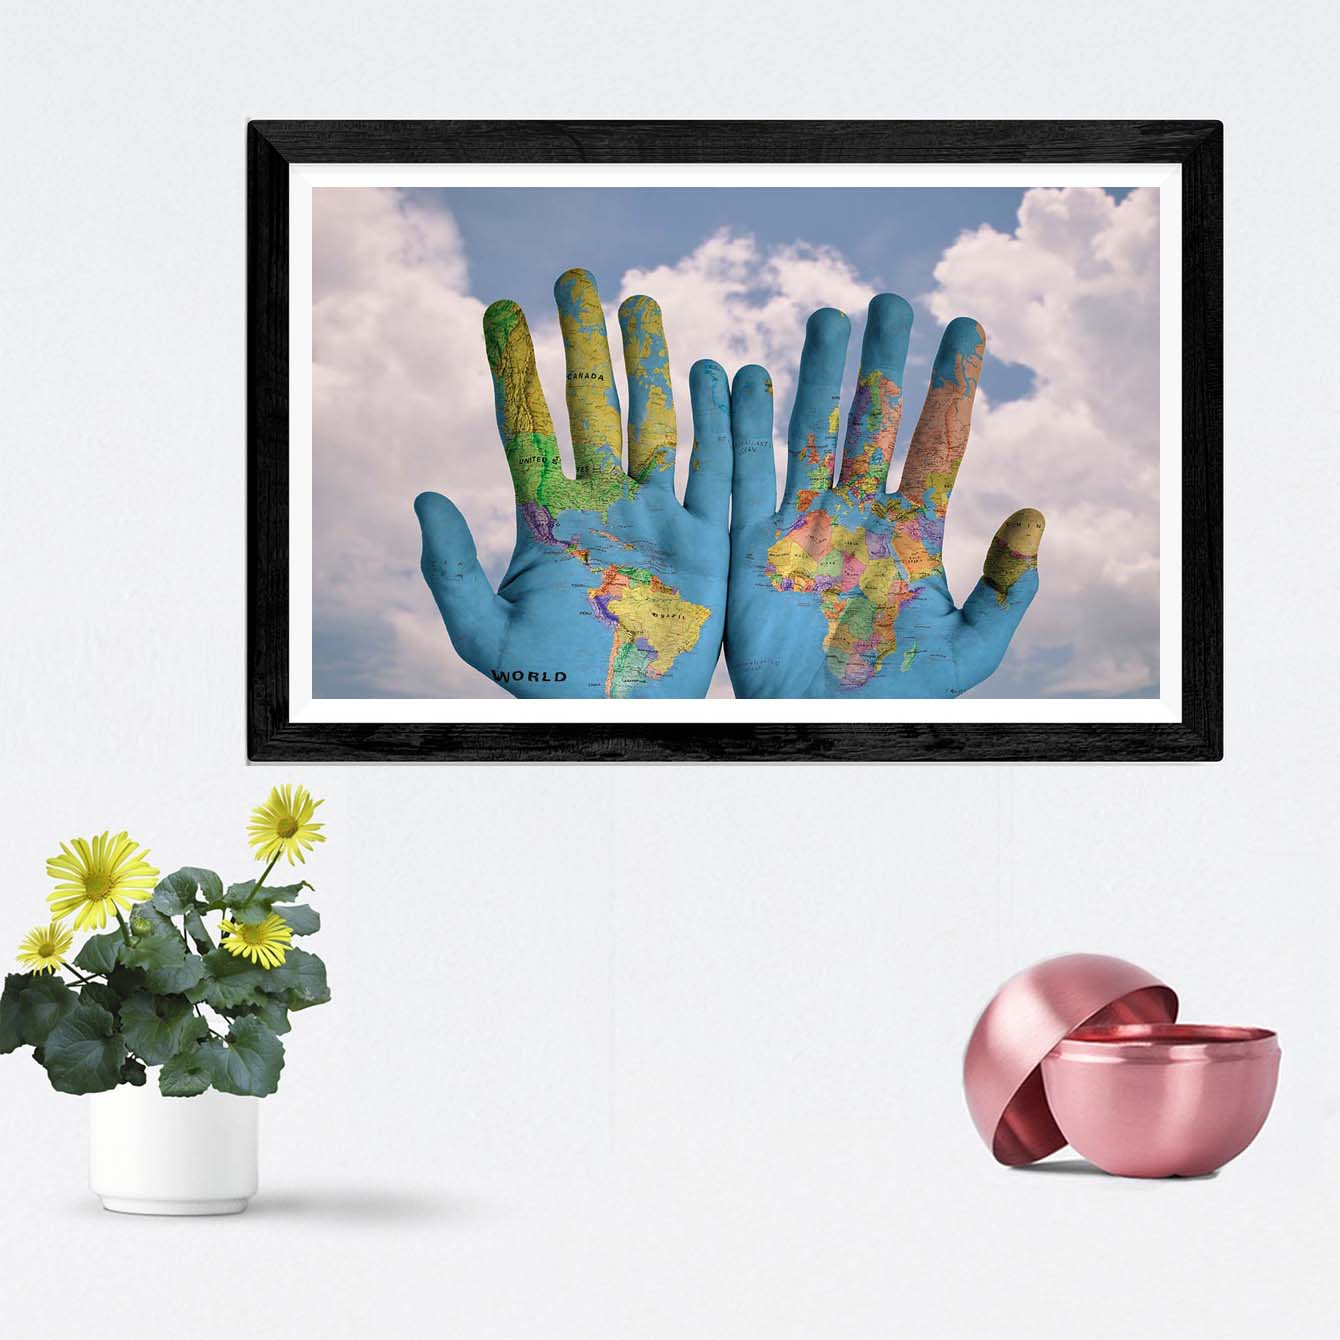 Each on Hand Abstract Framed Photography